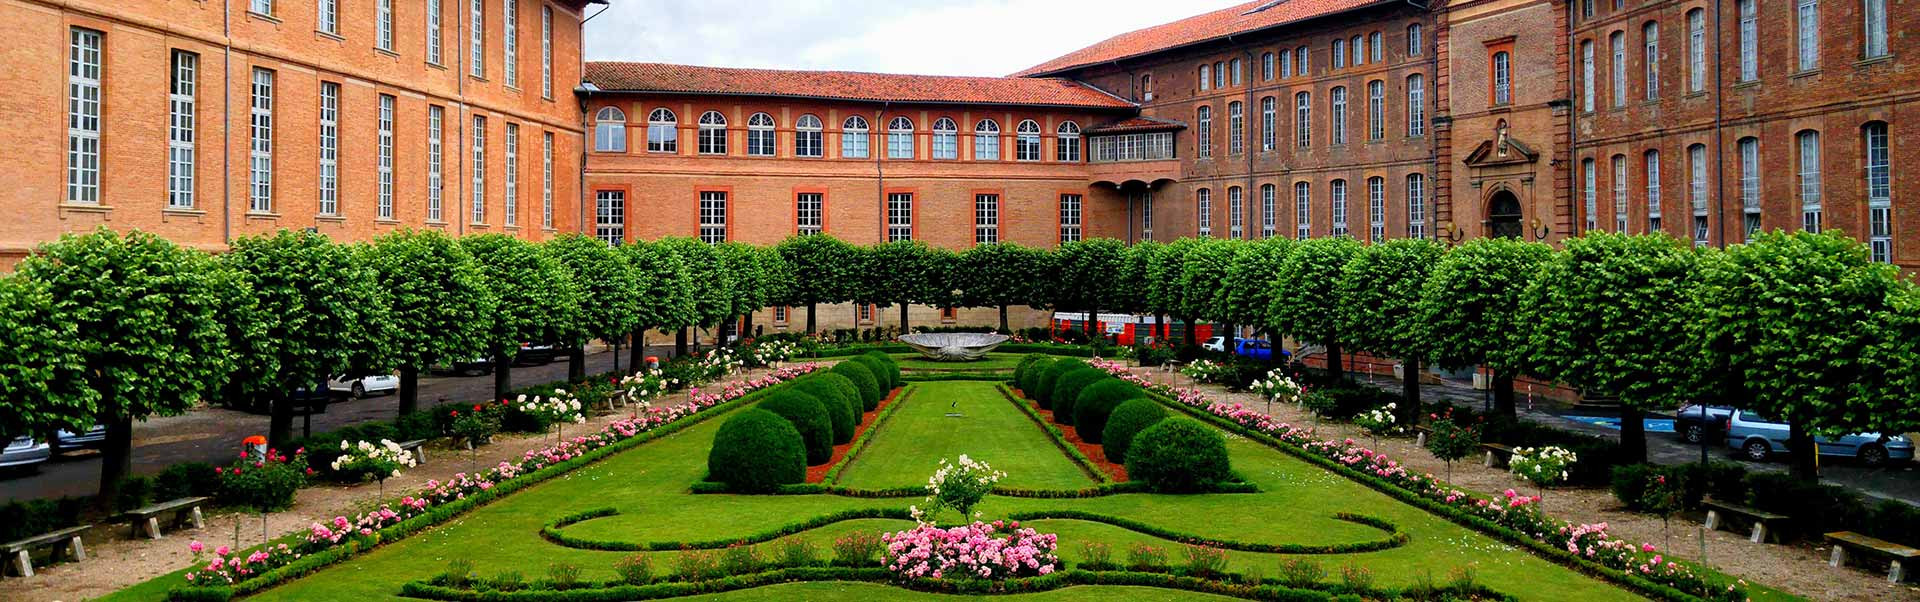 City of Toulouse in Occitaine, France